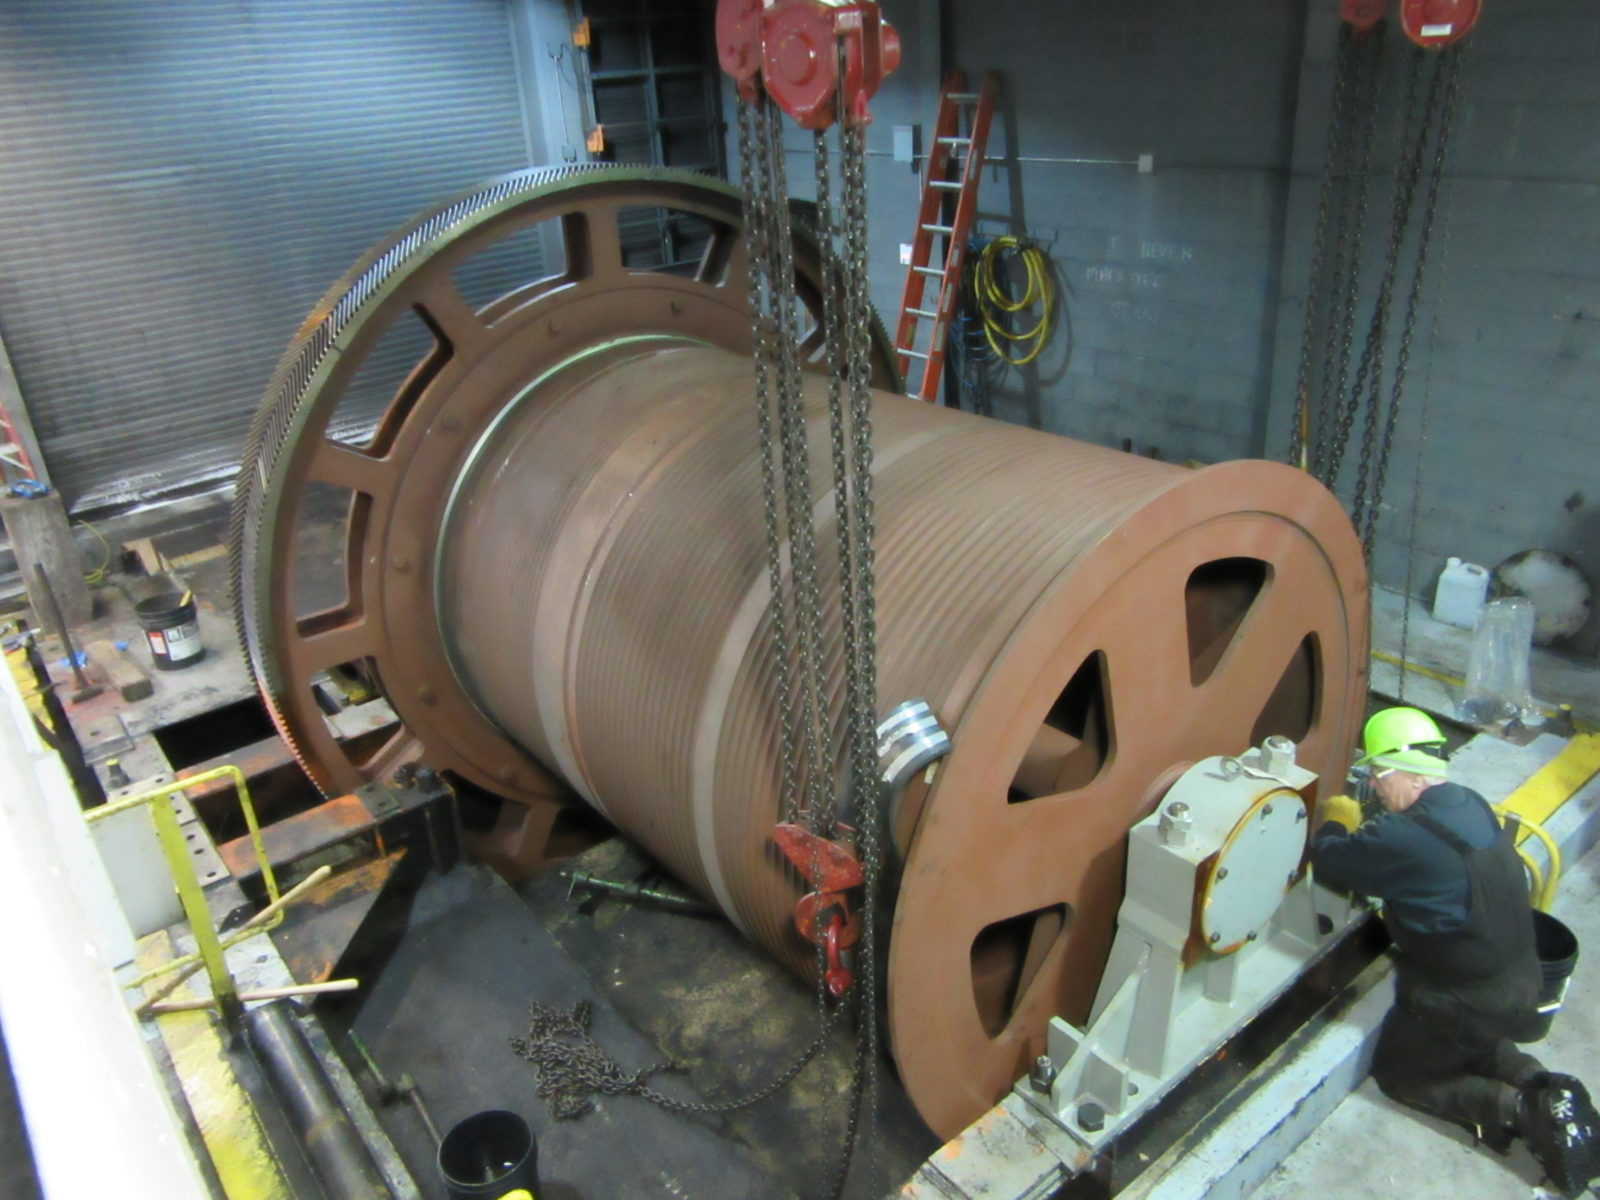 Barney Railcar Positioner Drum Replacement